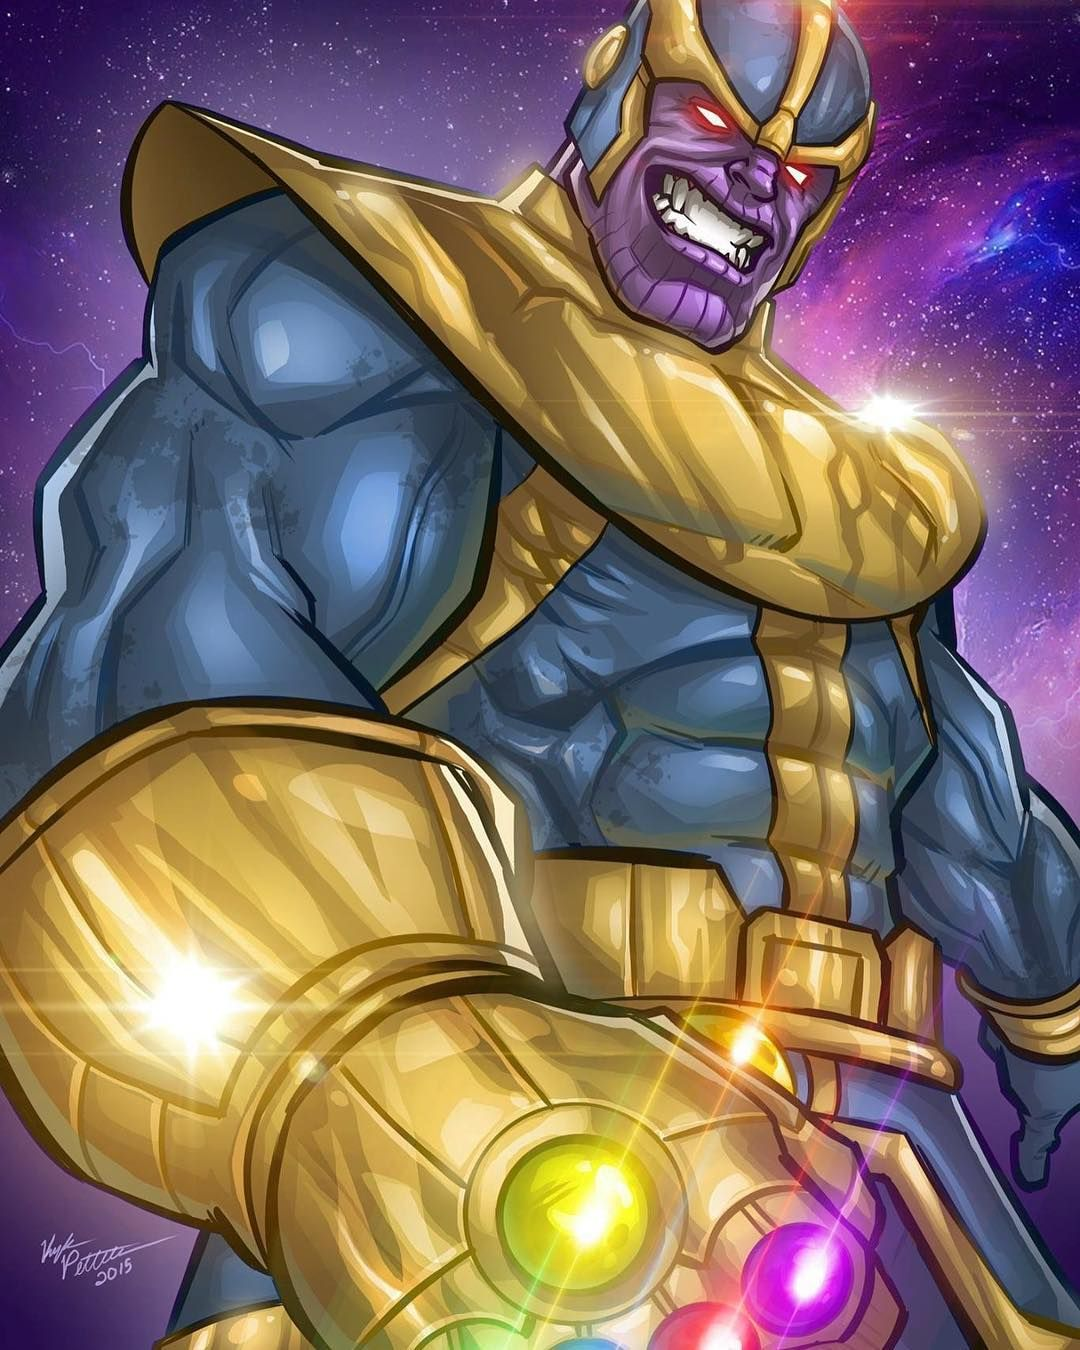 Throwback Thursday To This Classic Thanos The Mad Titan I Did About Two Years Ago I Really Want To Do A New Thanos Fan Art Piece In Vingadores Marvel Vilas